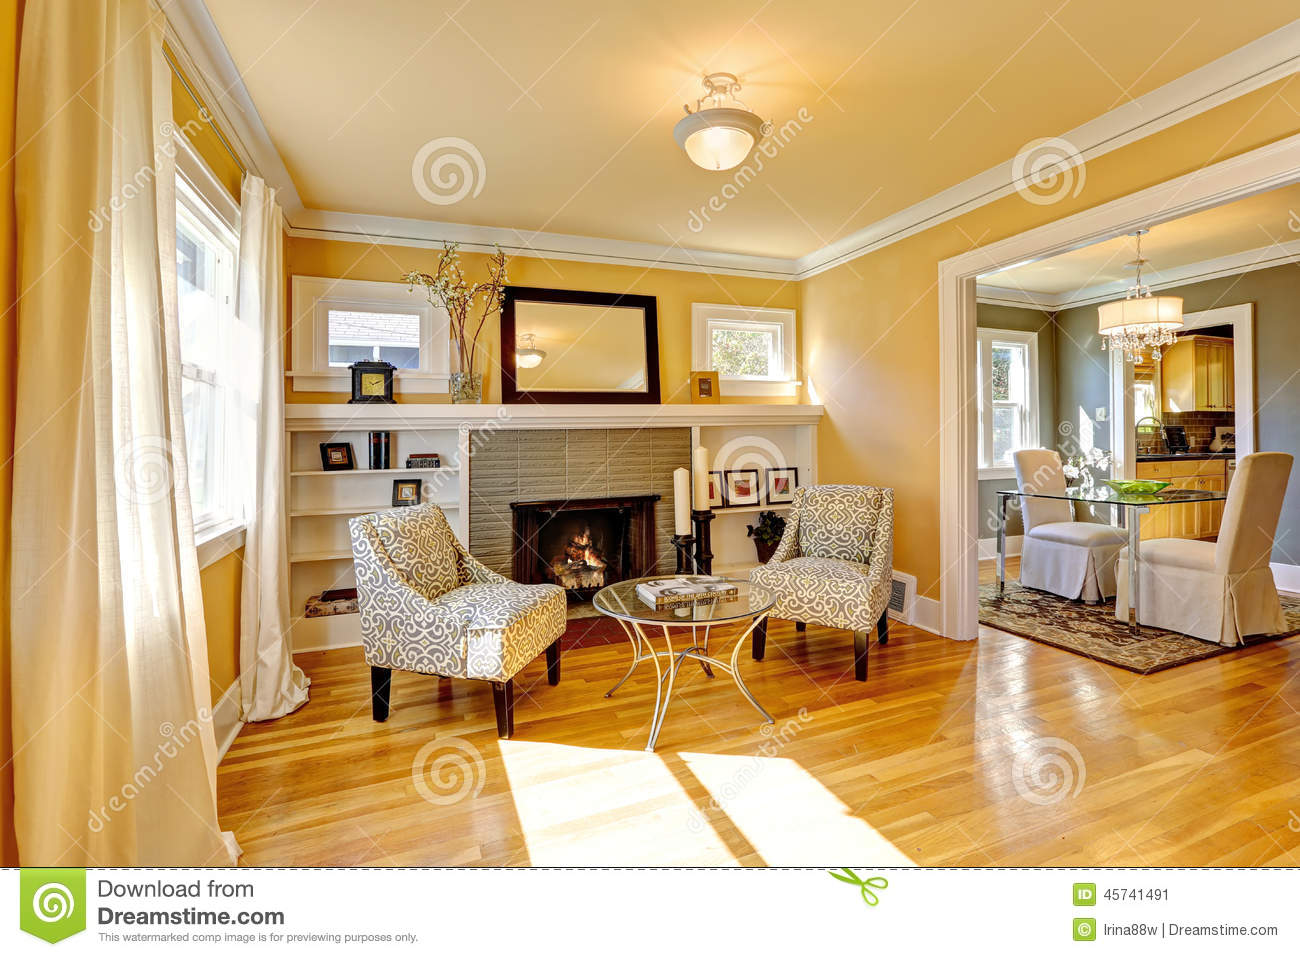 Cozy Sitting Area By The Fireplace Stock Photo - Image: 45741491